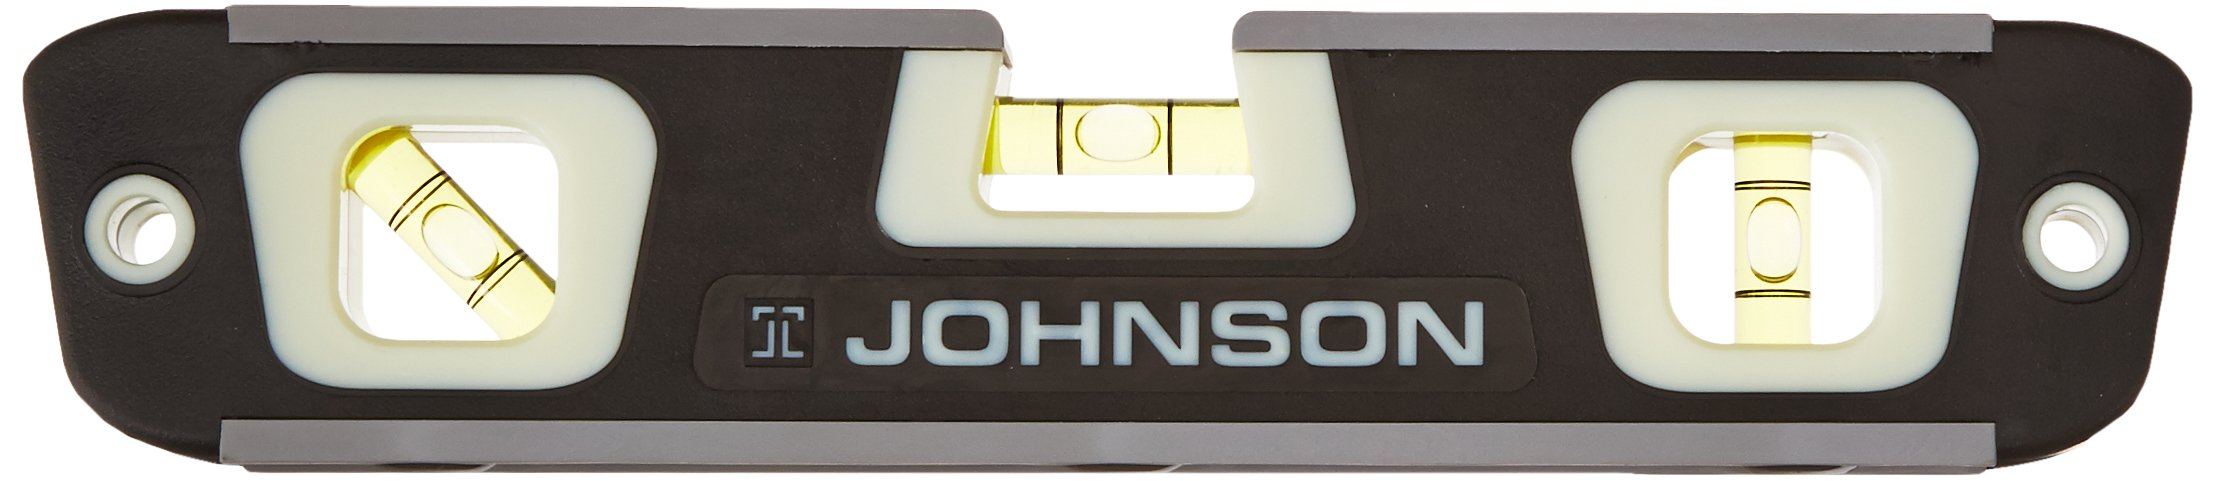 Johnson Level & Tool 007 10-Inch Glo-View Magnetic Torpedo Level by Johnson Level & Tool (Image #1)